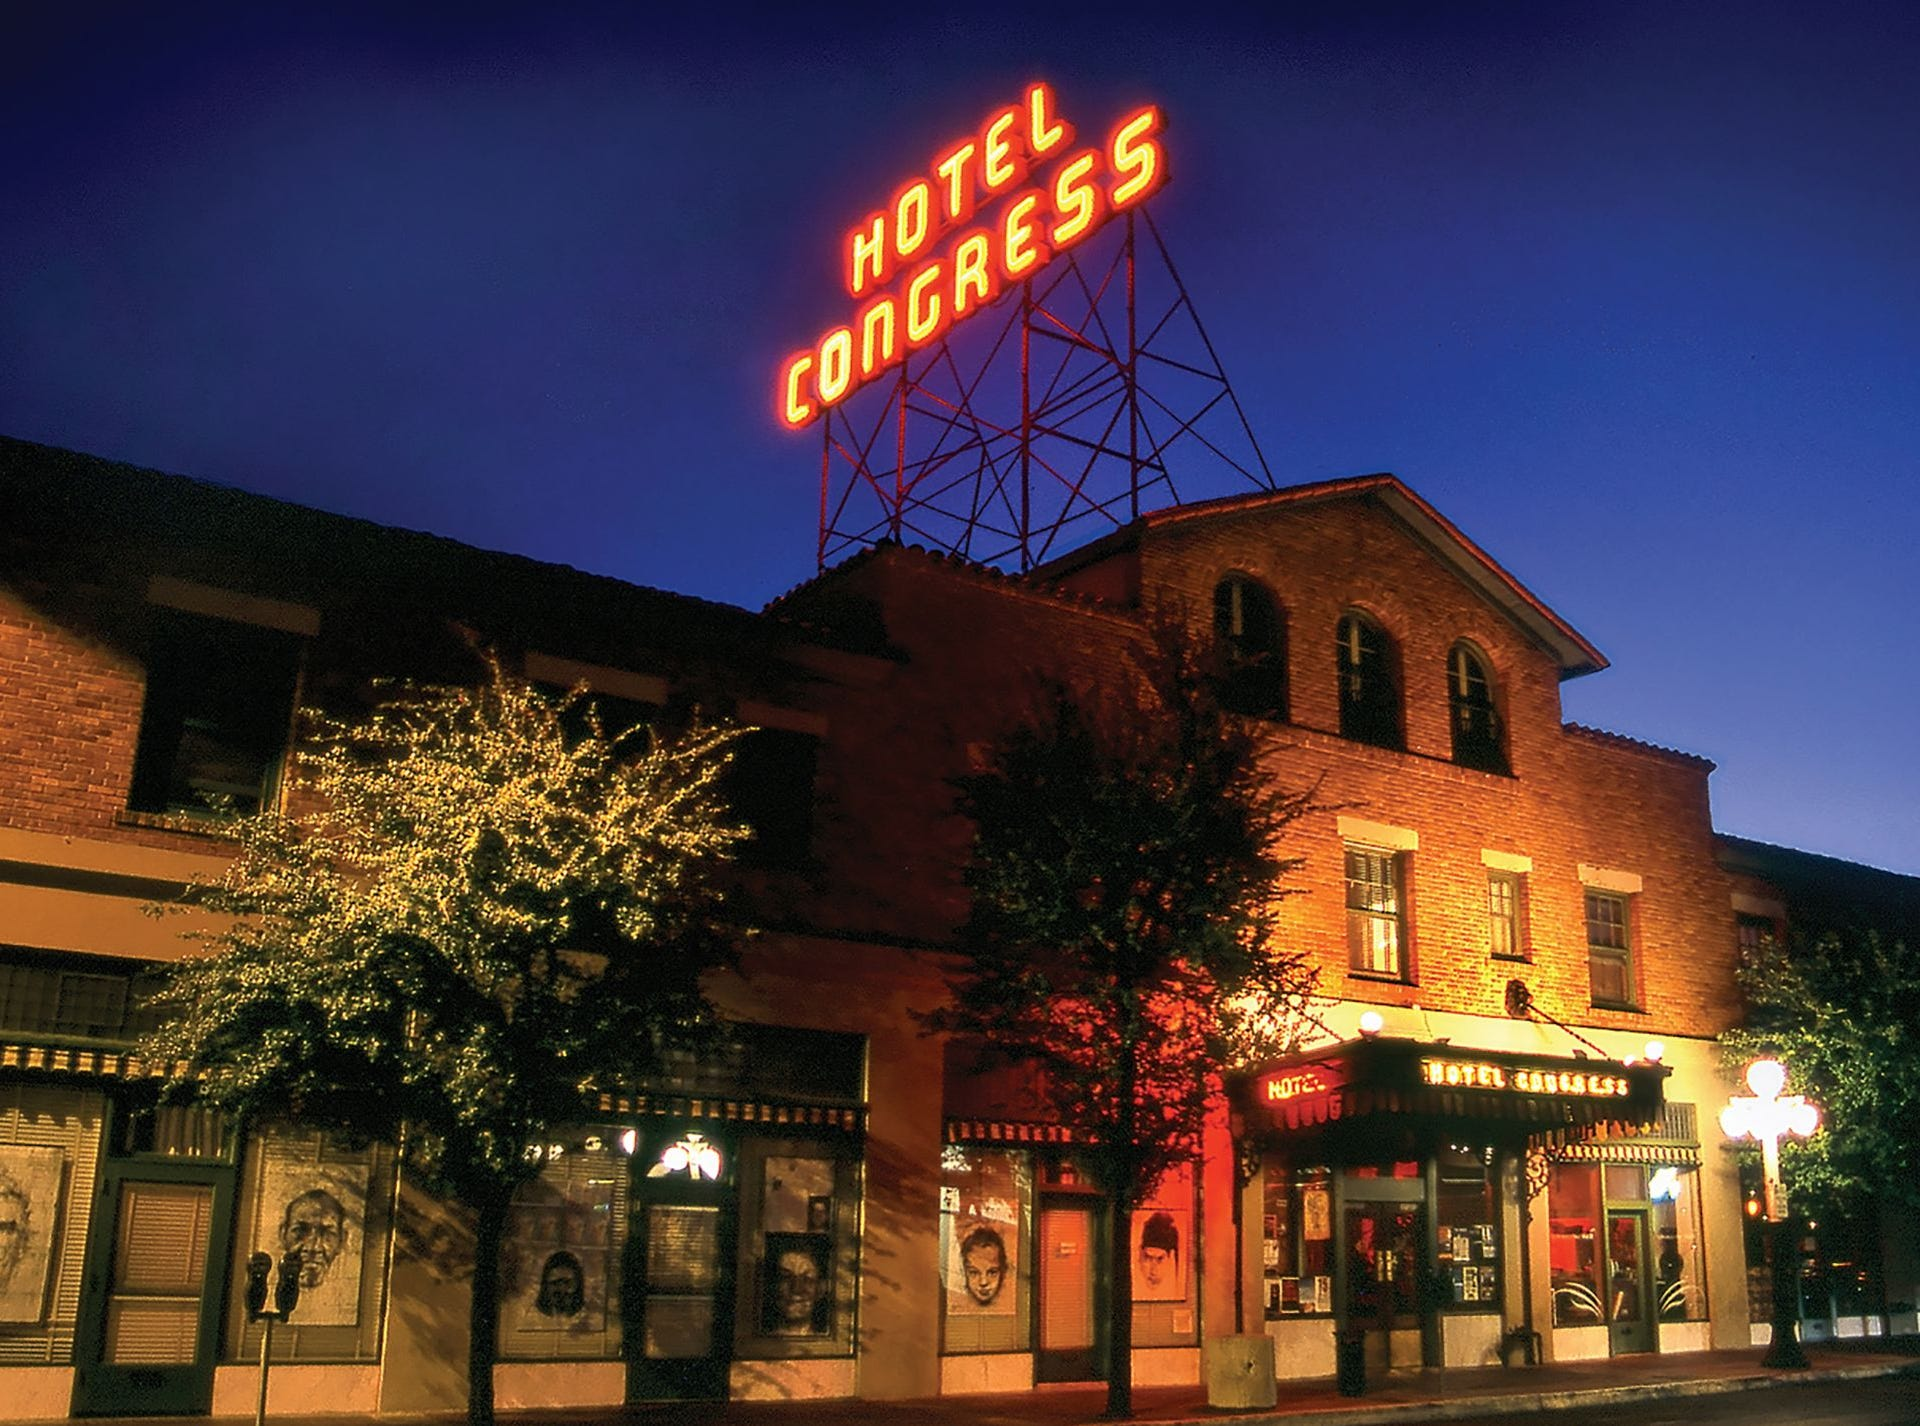 Tucson: Through the Decades at Hotel Congress |Party in the past and ring in the future at Hotel Congress. Dress in your fave New Year's Eve duds or celebrate the decade of your choice with your apparel. | Details: 8 p.m.-2 a.m. Monday, Dec. 31. Hotel Congress, 311 E. Congress St., Tucson. $35-$140. 520-622-8848, hotelcongress.com/nye.